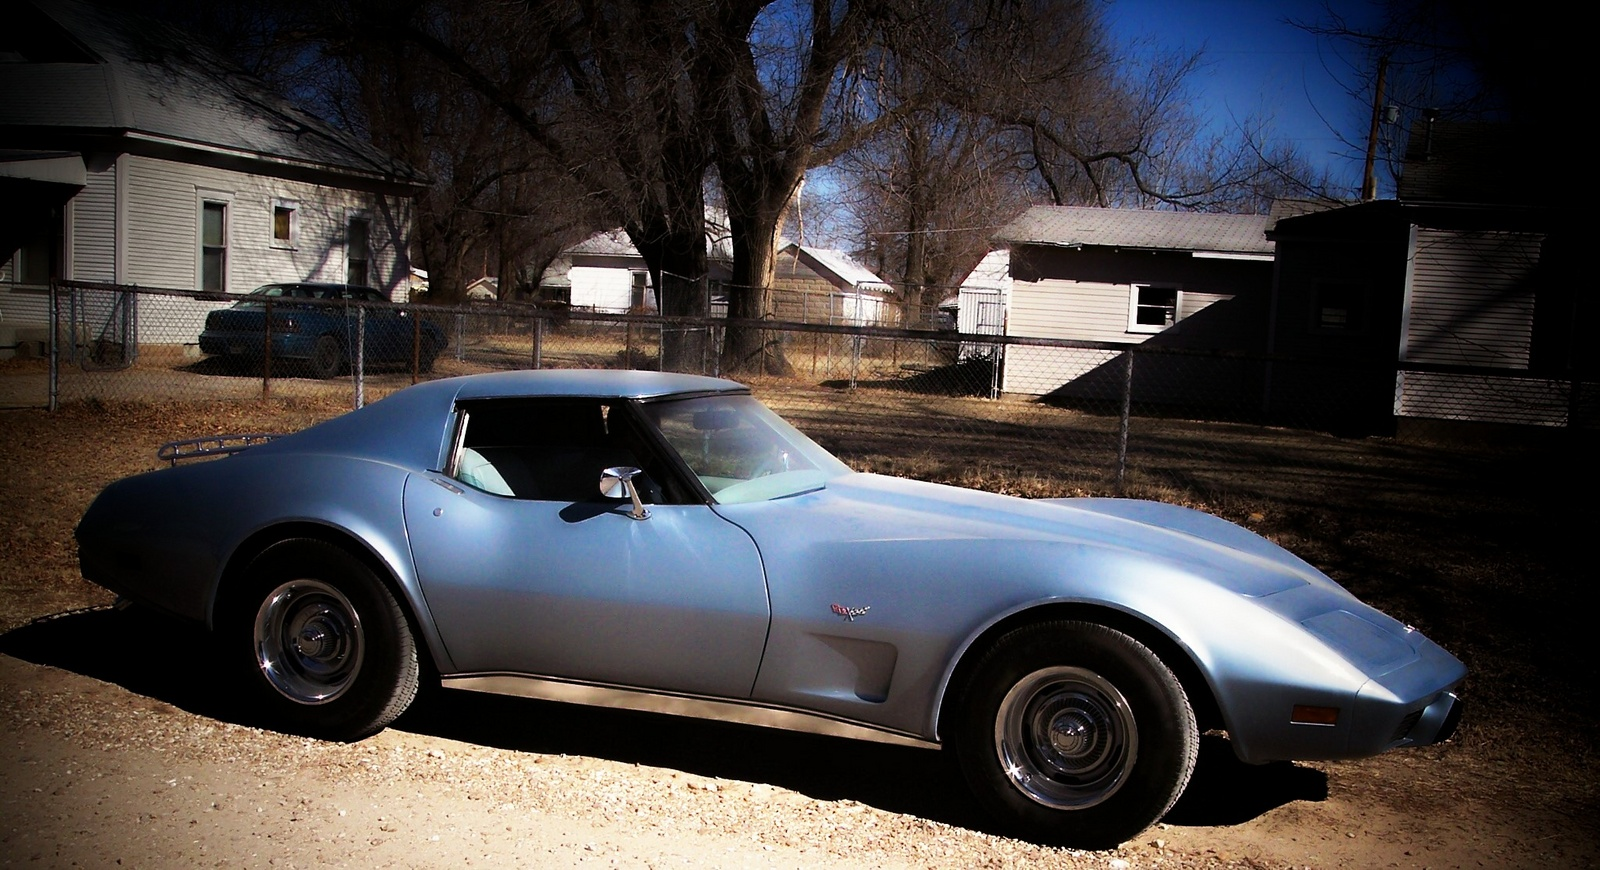 bella28's 1977 Chevrolet Corvette